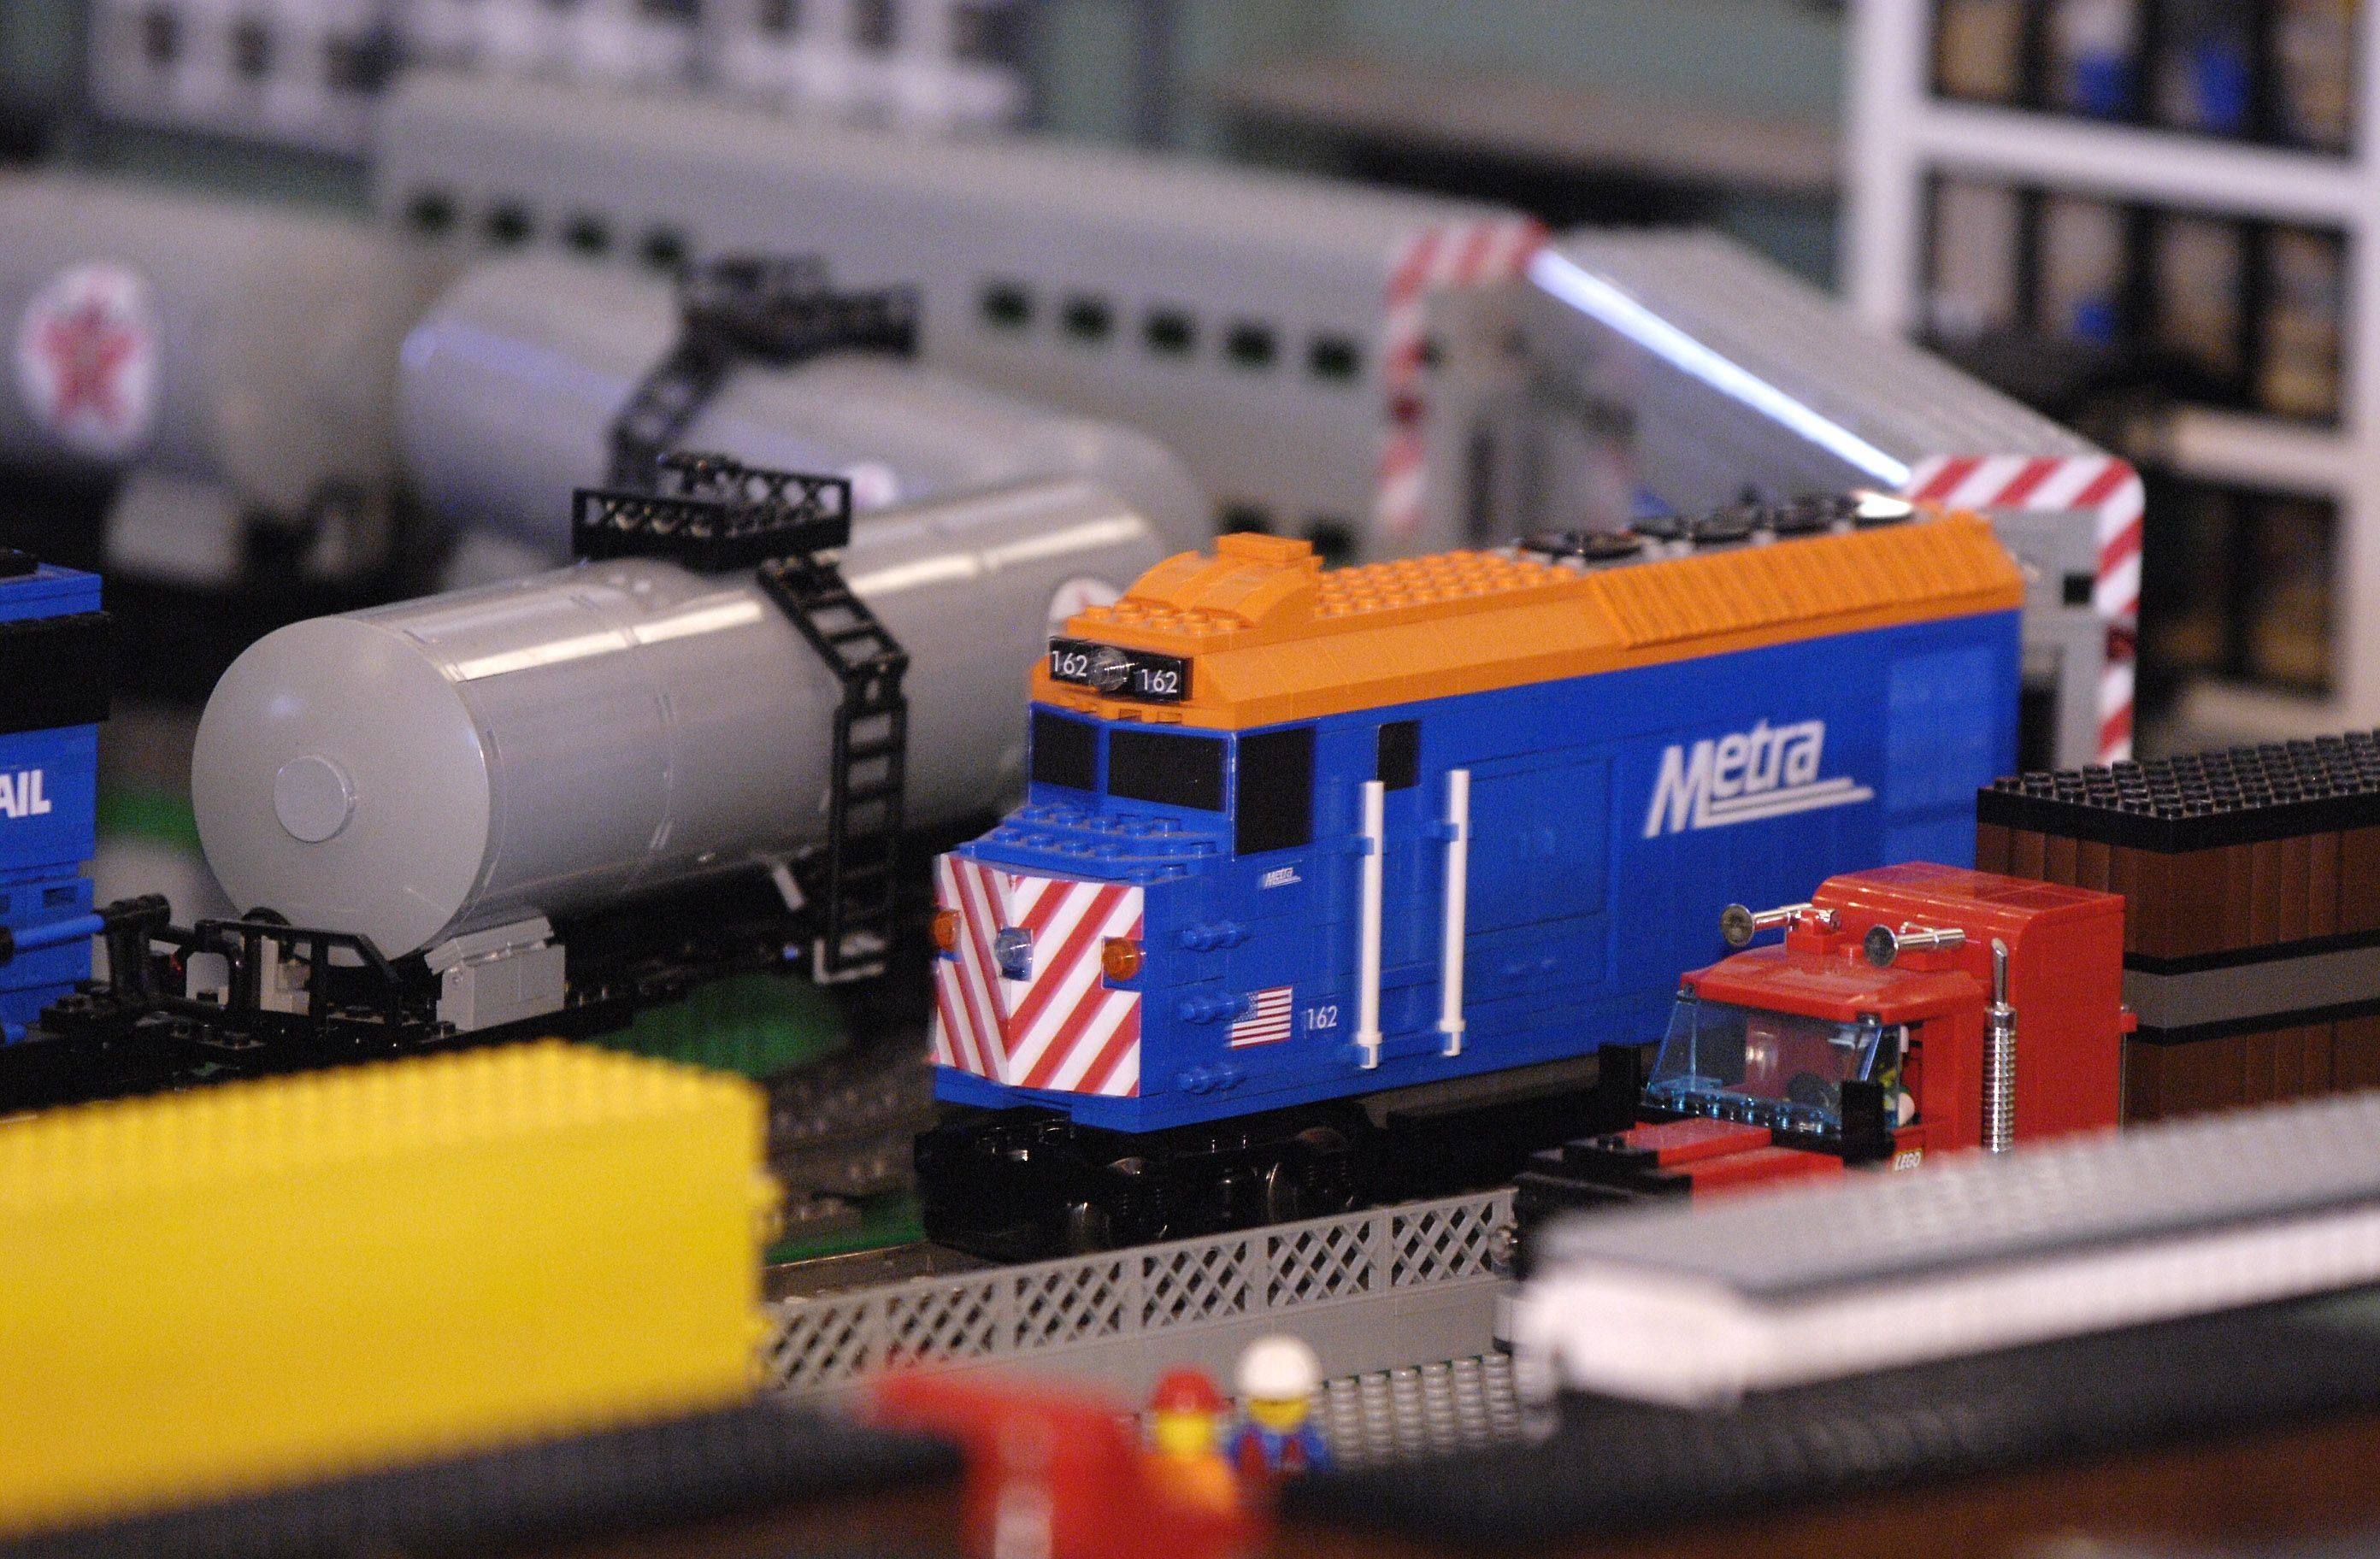 A Metra train races around a Lego cityscape Sunday during the Lego Train Show at Cantigny Park in Wheaton.